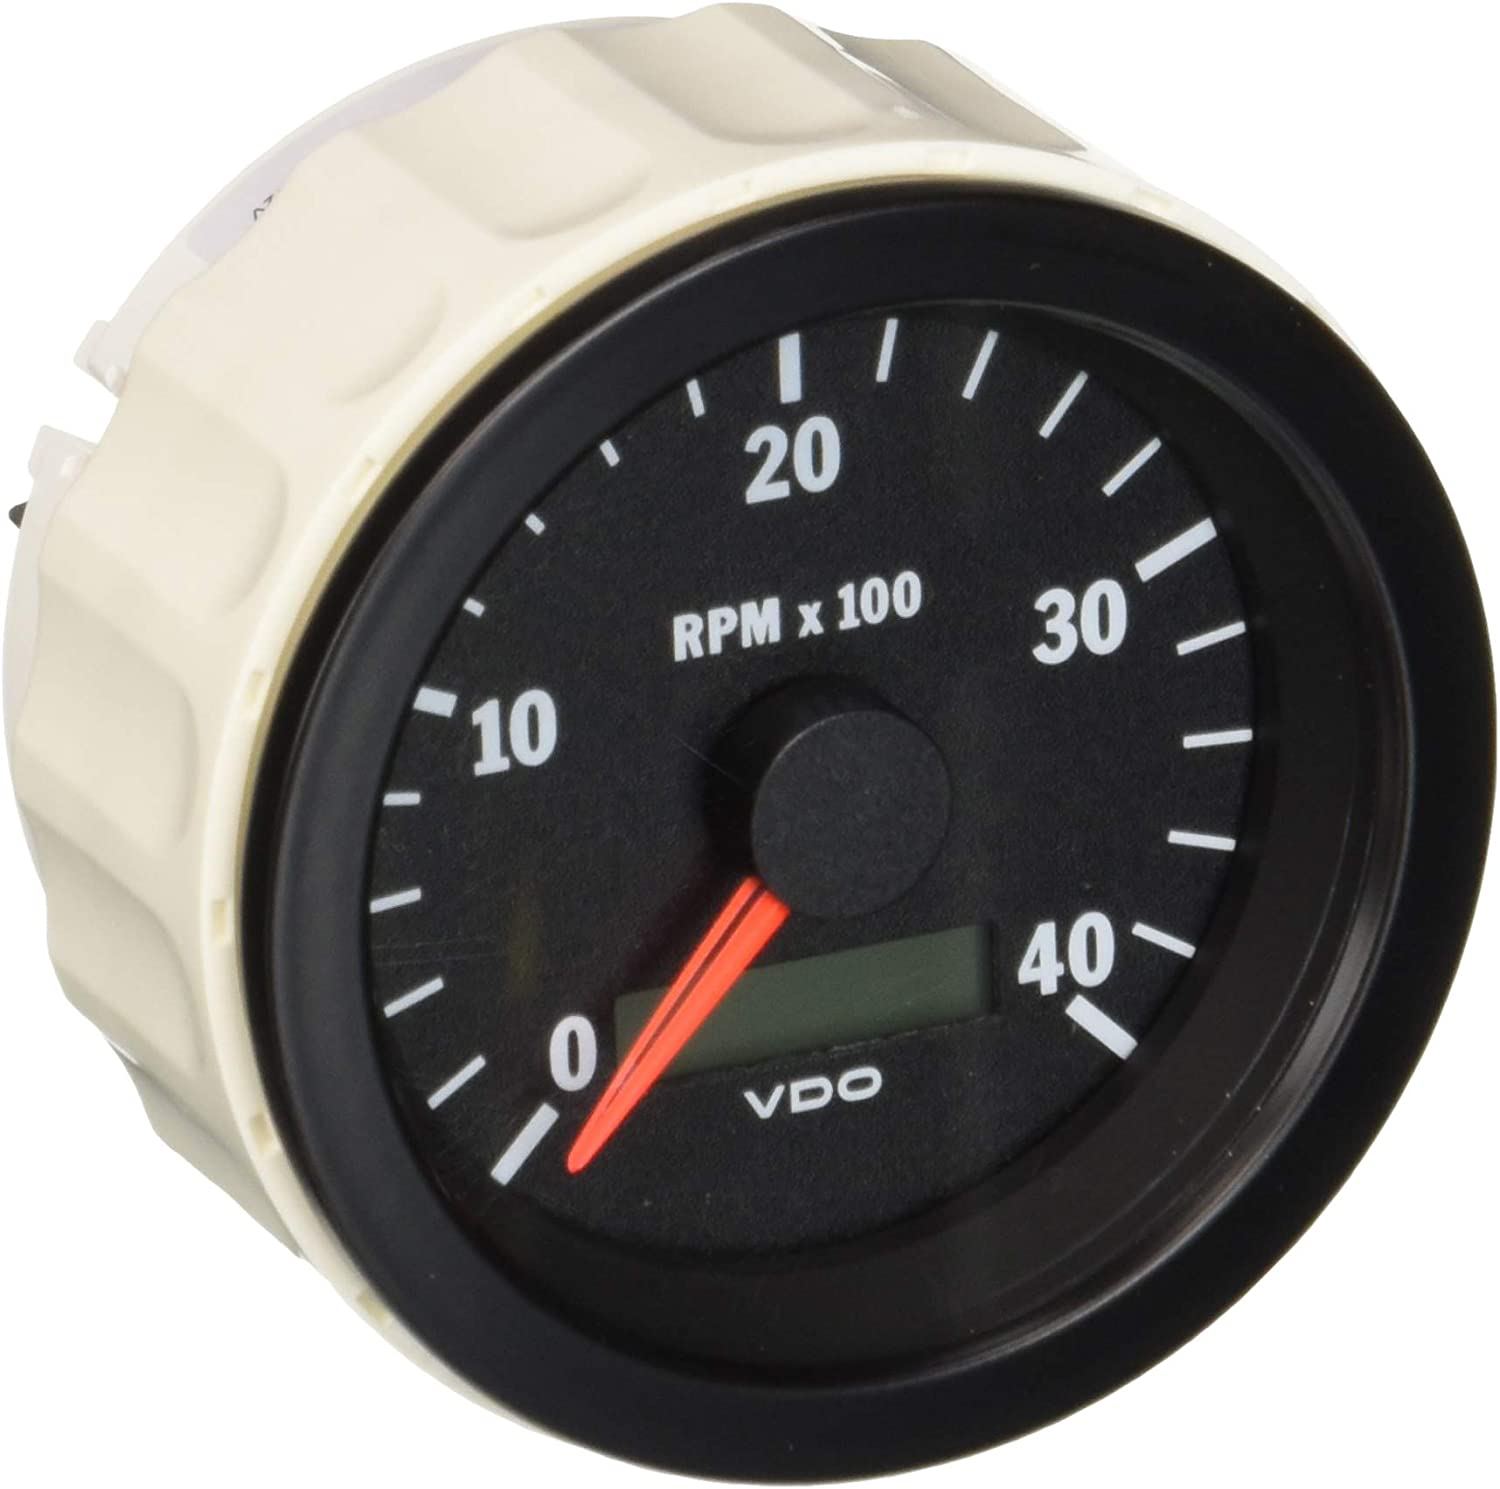 playback tachometer, bosch tachometer, digital tachometer, auto meter tachometer, faria tachometer, led tachometer, six-cylinder tachometer, racing tachometer, teleflex tachometer, smiths tachometer, marine tachometer, mallory tachometer, on vdo tachometer wiring color